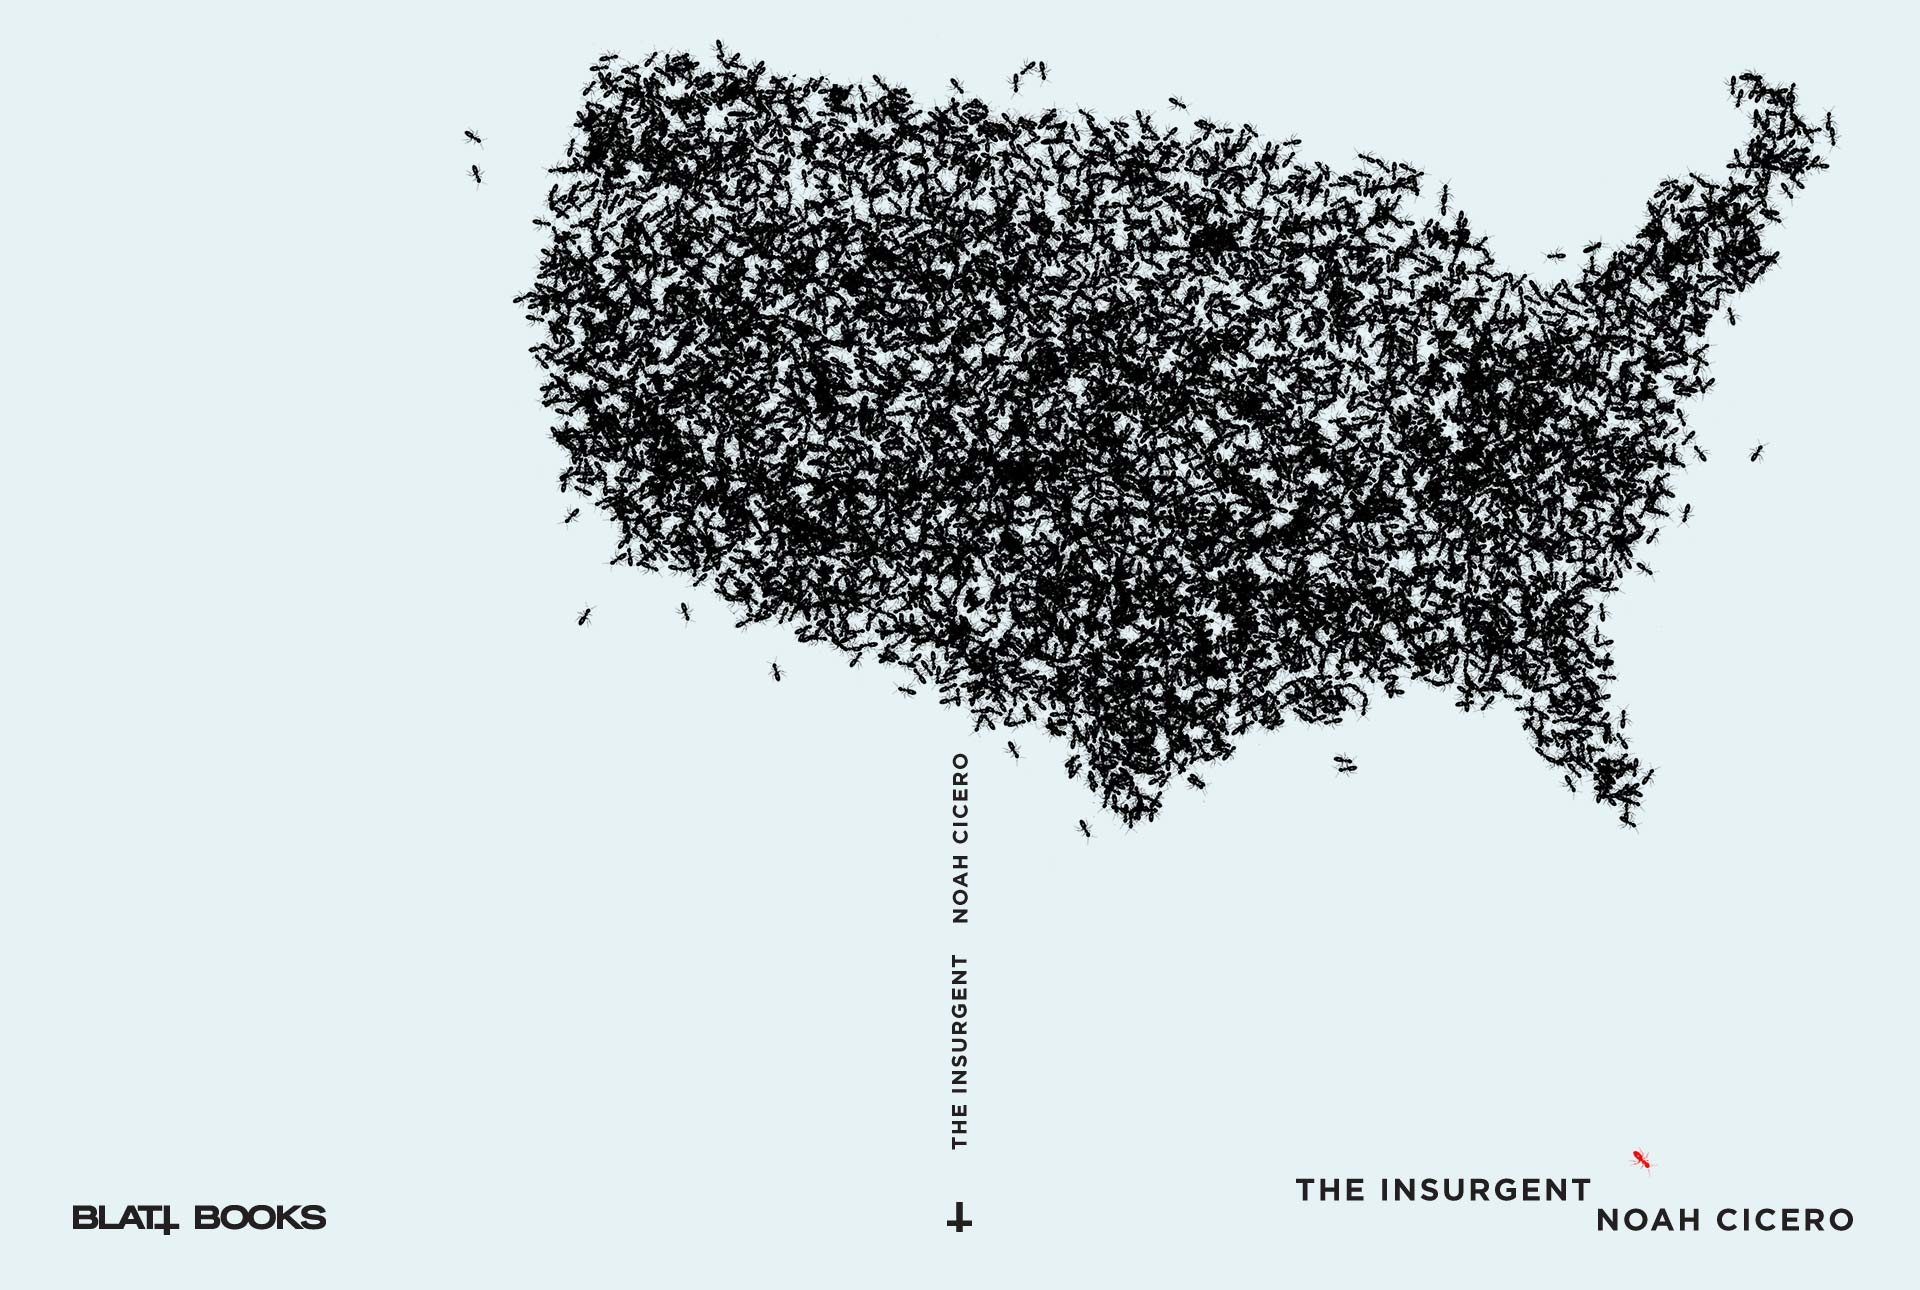 Noah Cicero The Insurgent Book Cover Design Mario Dzurila